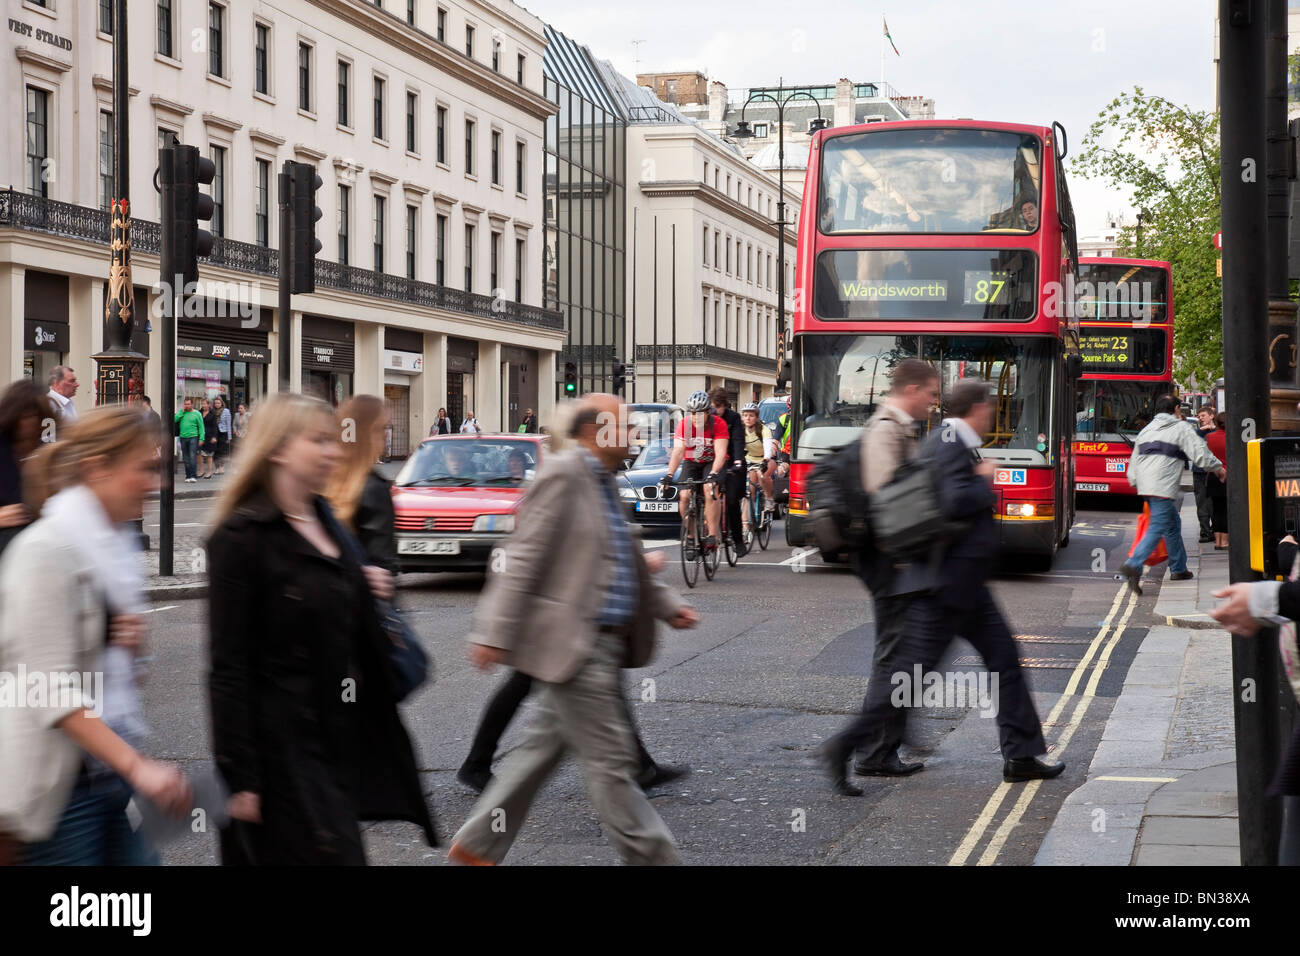 Pedestrians crossing a road, at the back cars, red doubledecker busses and cyclists, London - Stock Image